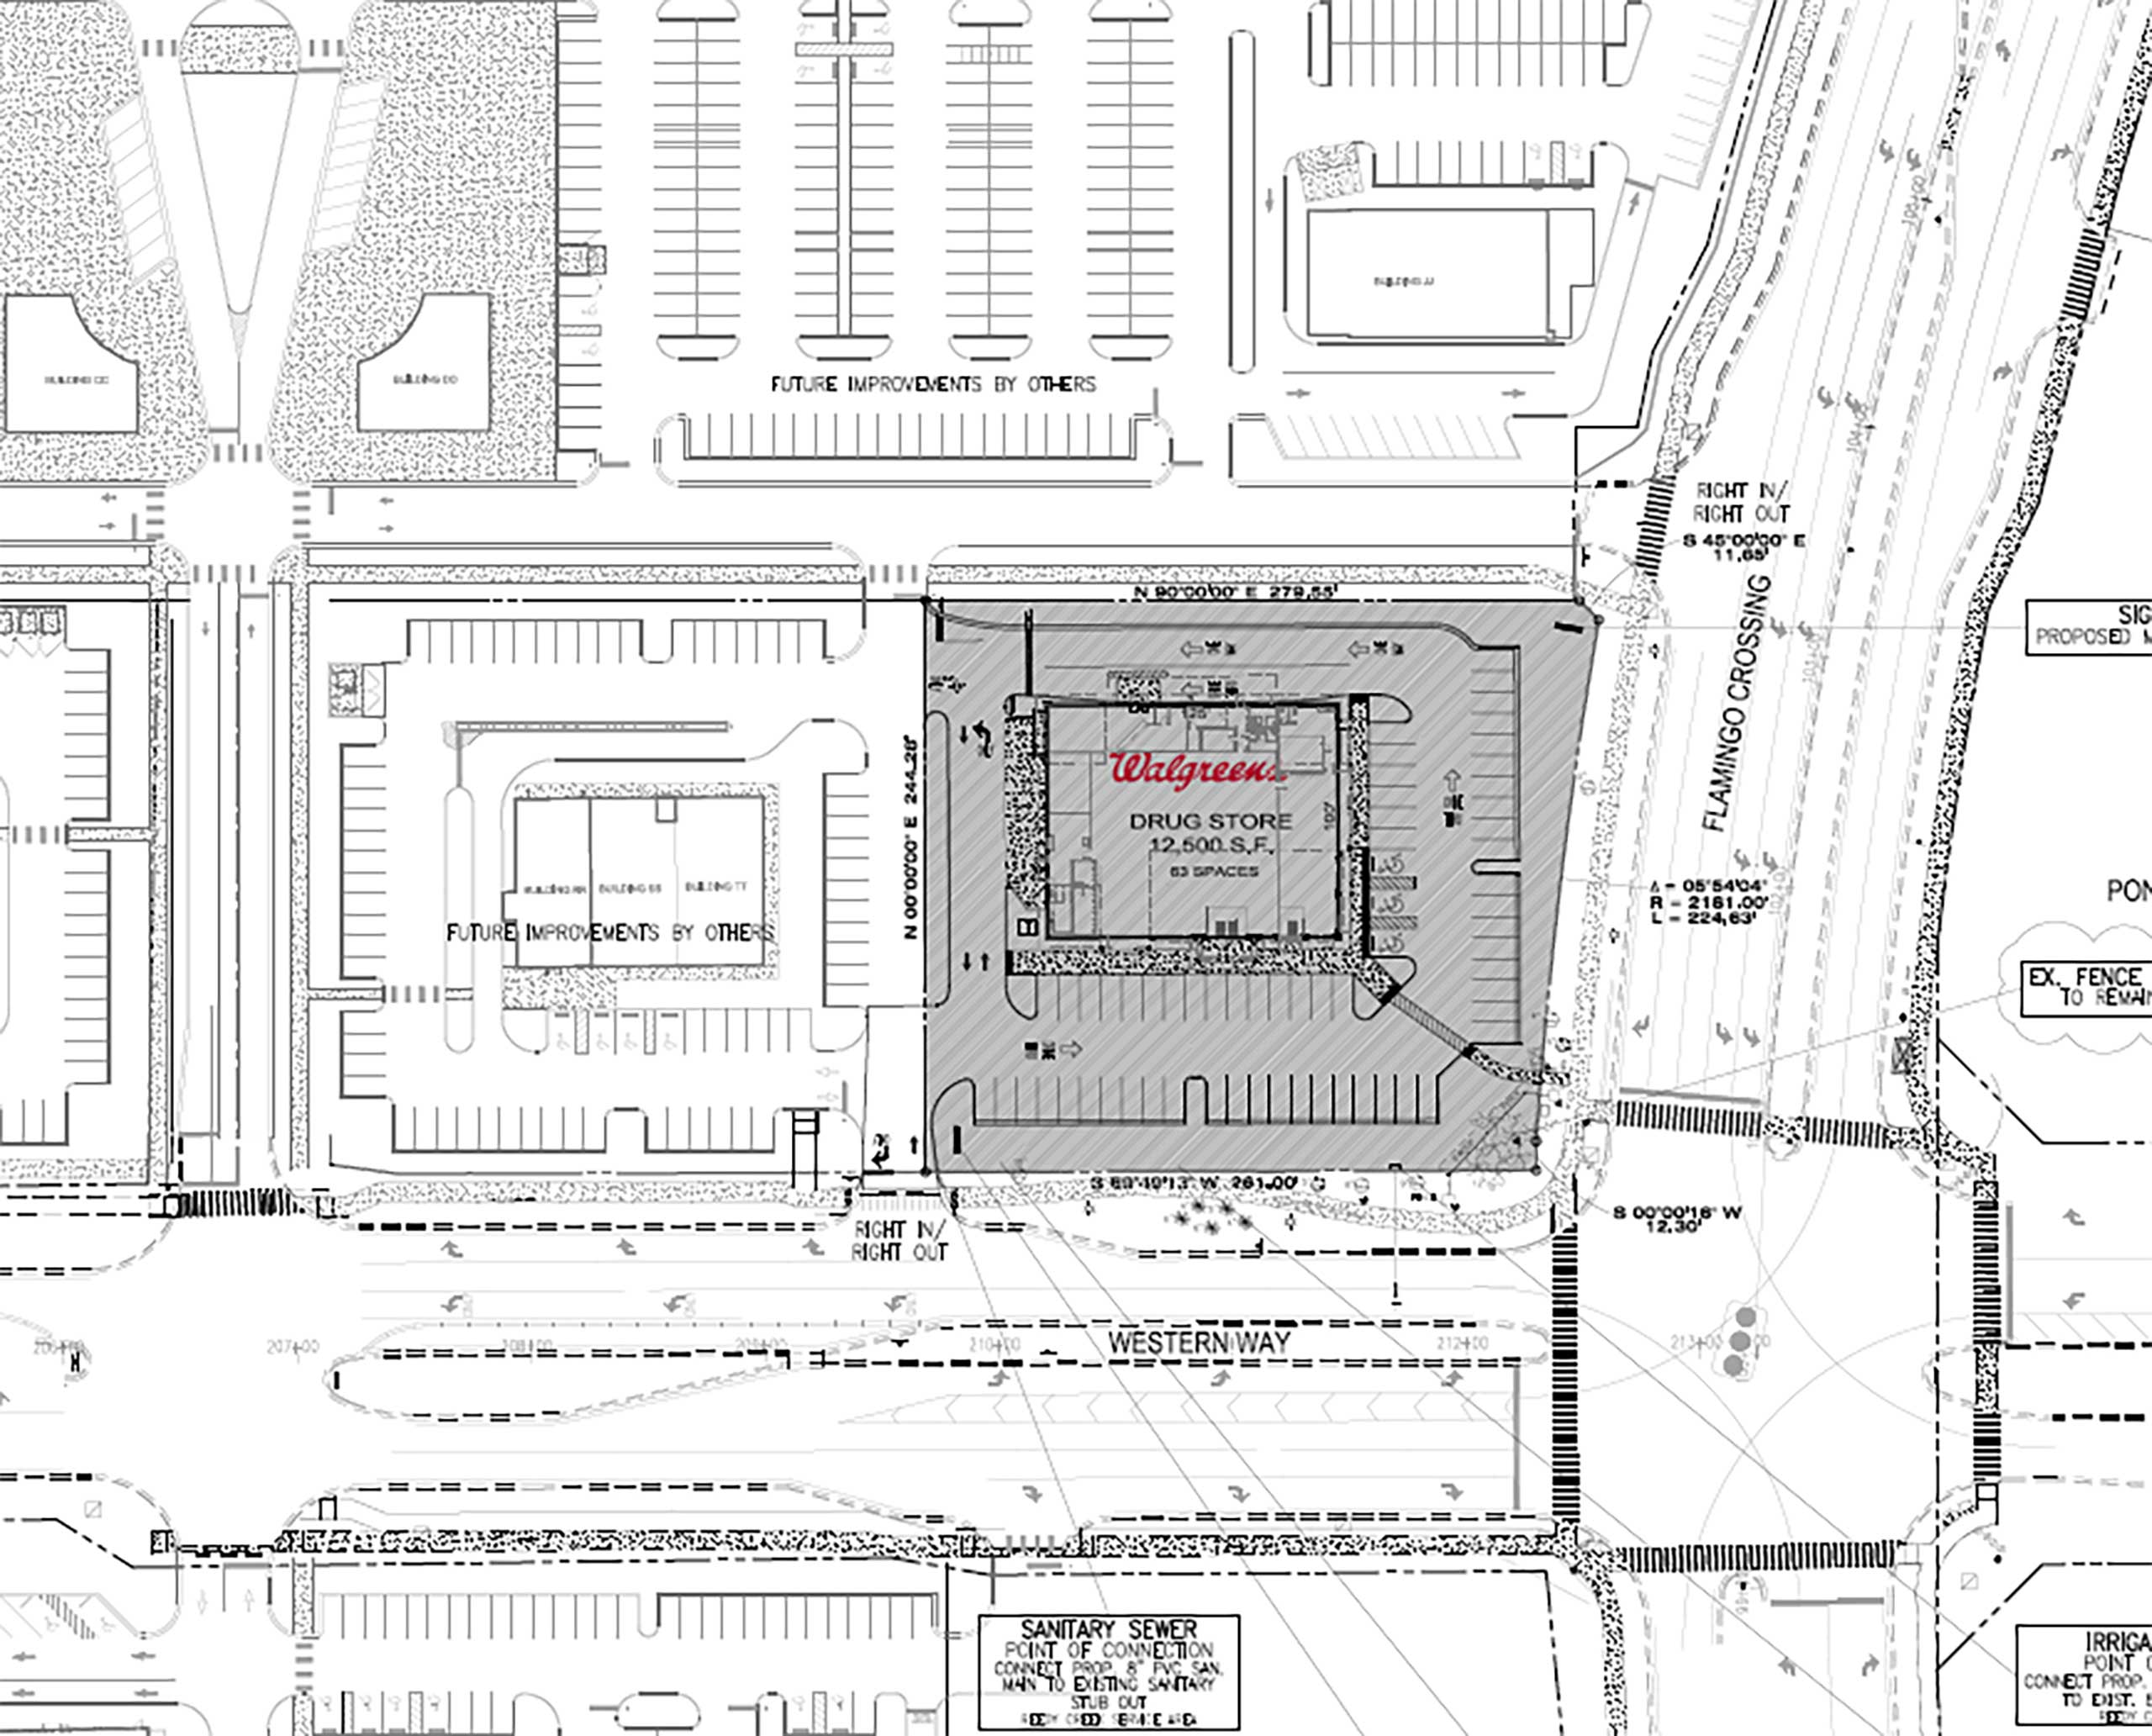 Walgreens permit for Flamingo Crossings